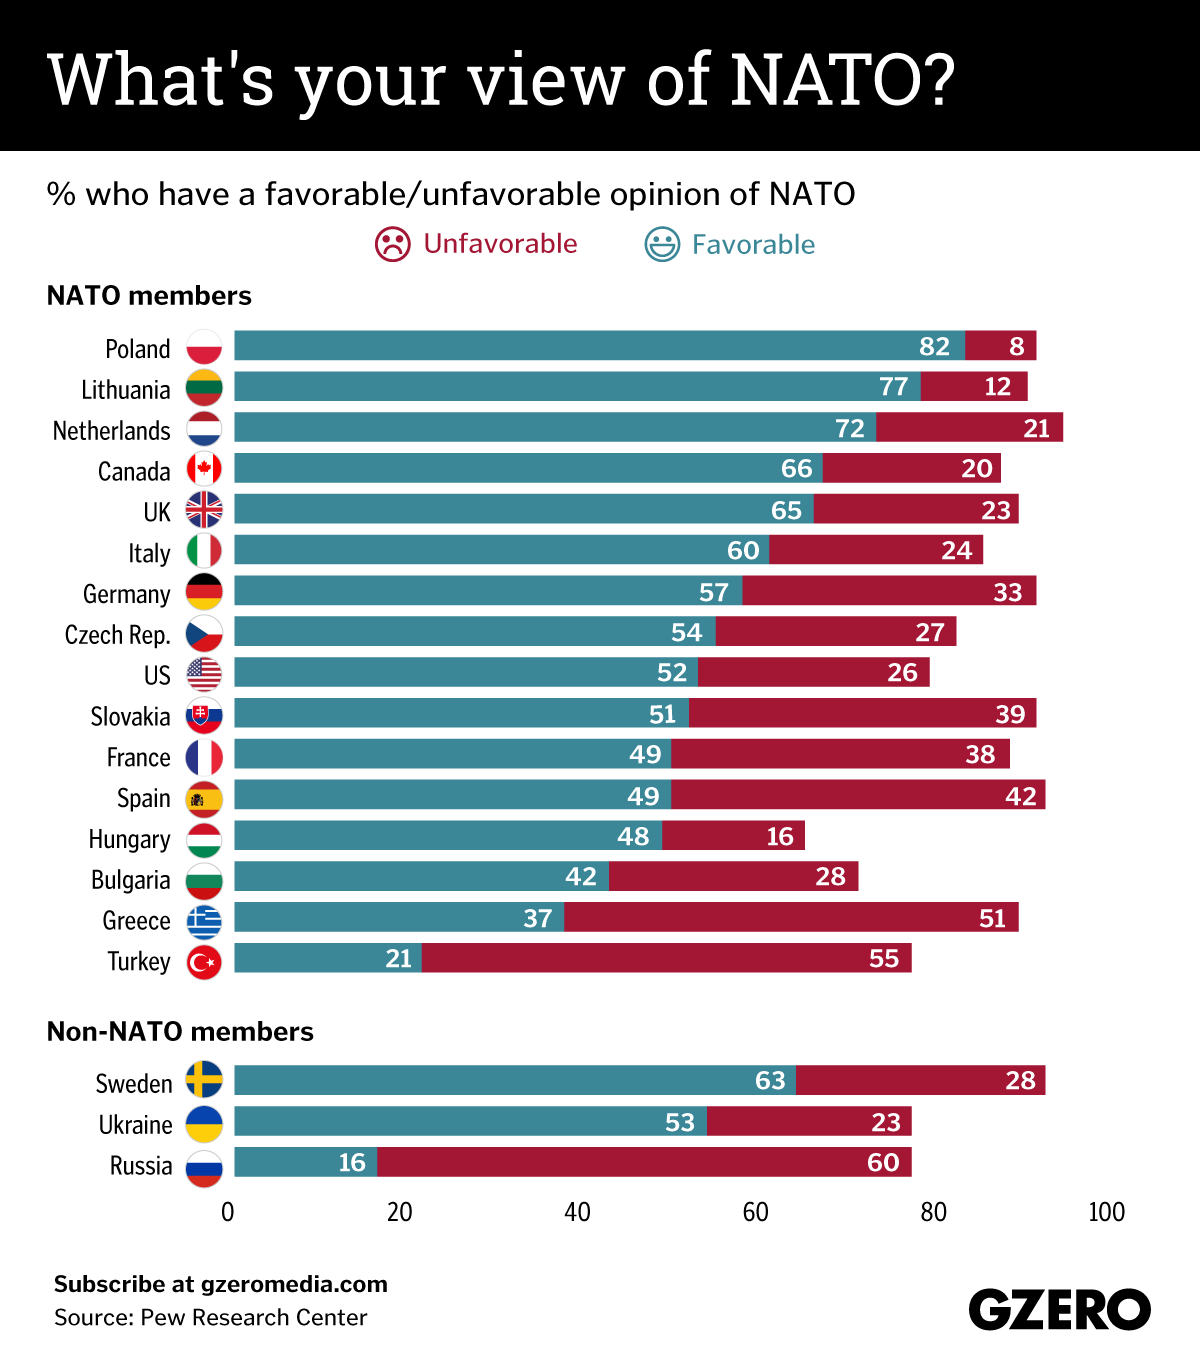 The Graphic Truth: What's your view of NATO?